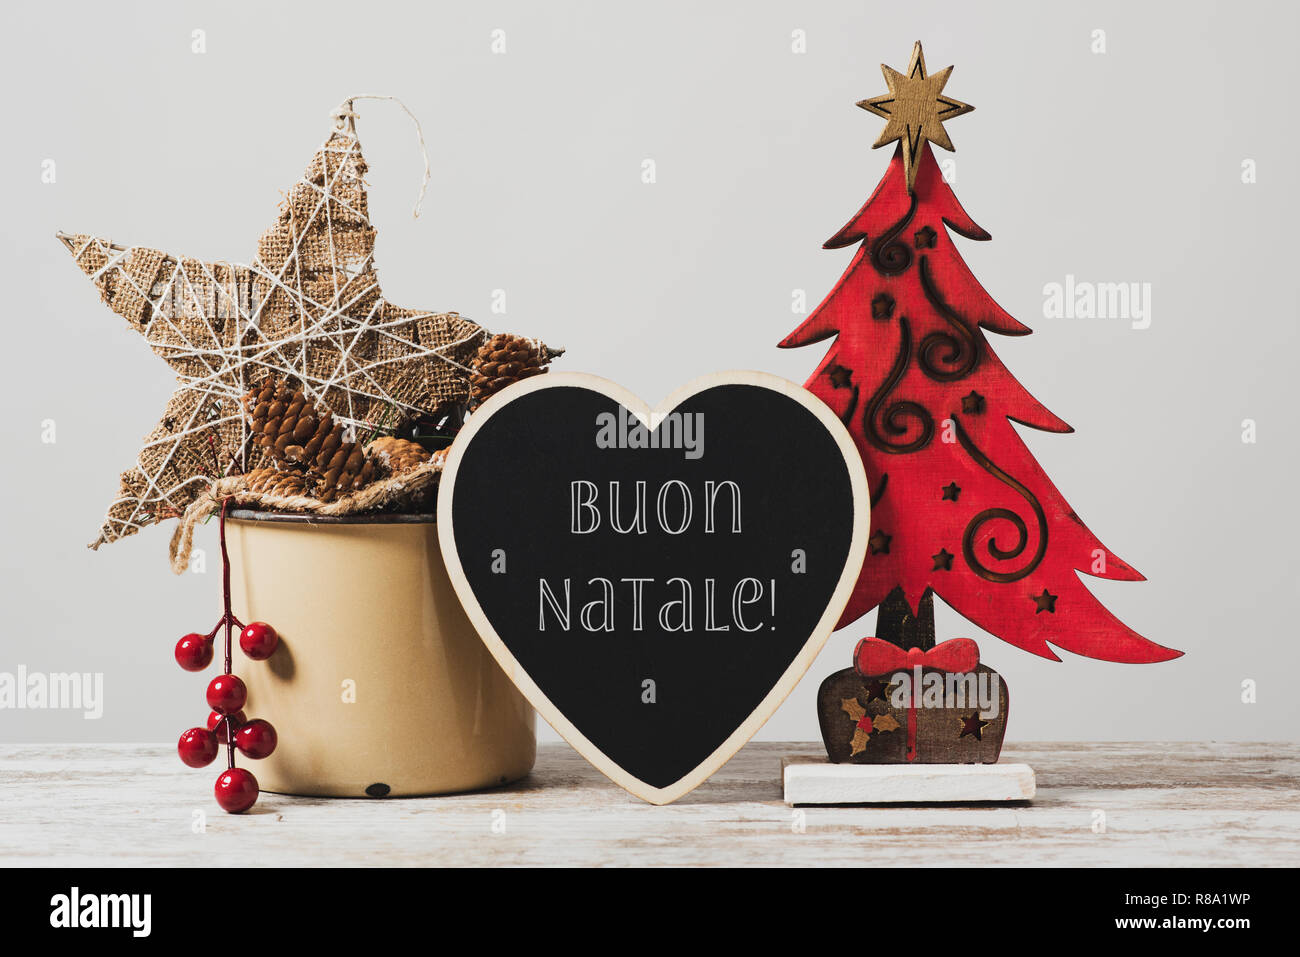 Buon Natale Ornament.Christmas Tree Some Cozy Ornaments In A Rustic Enamel Pot And A